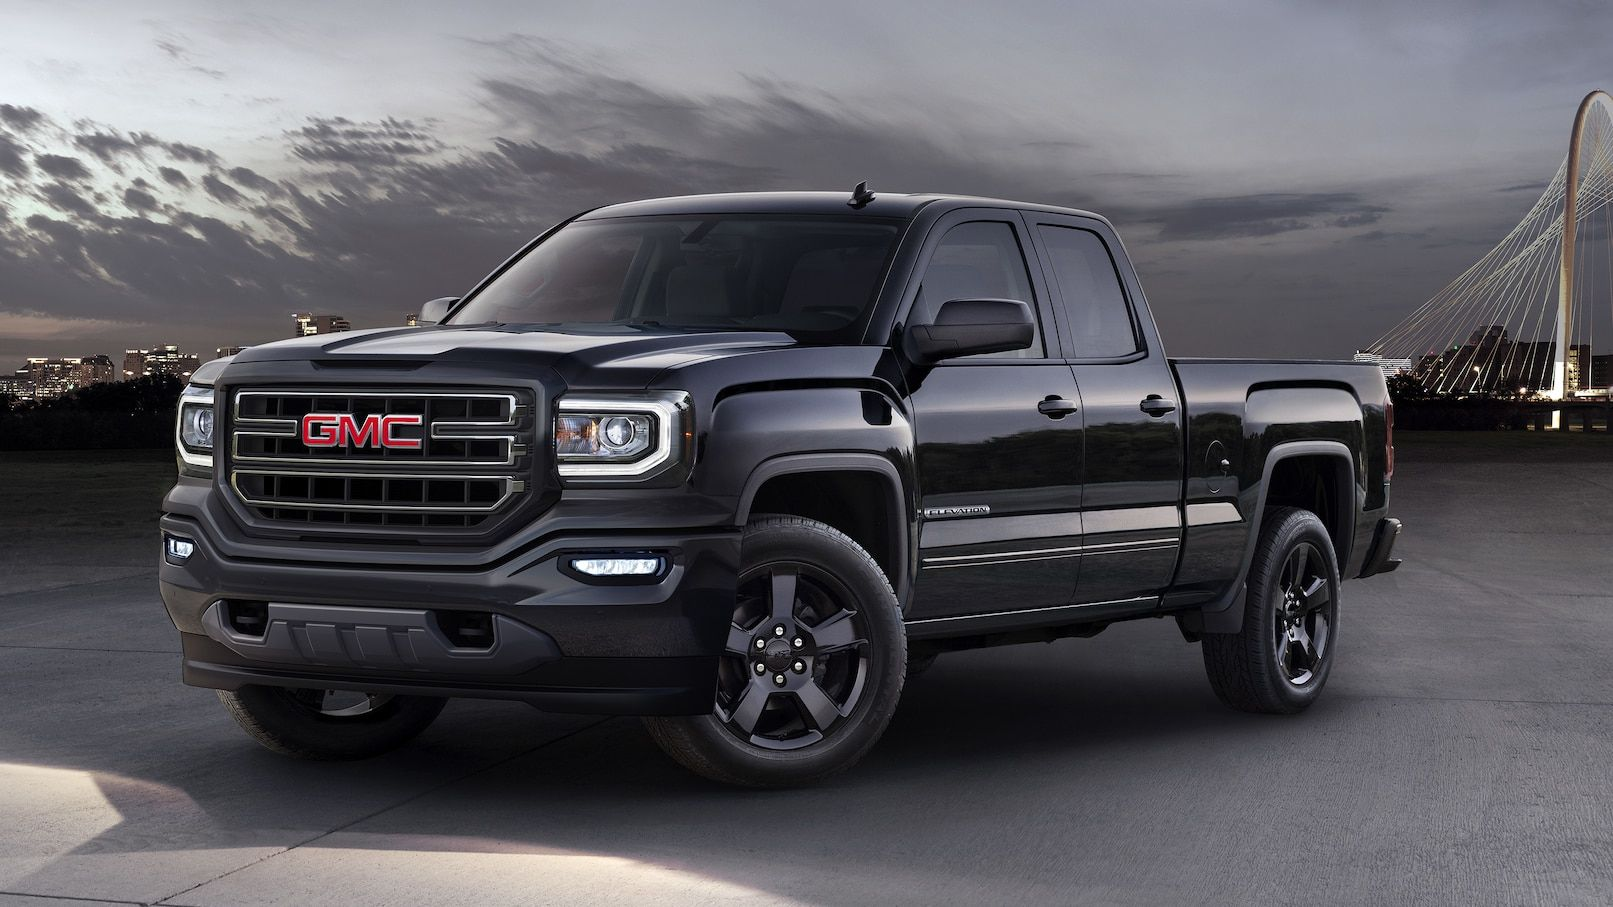 2018 Sierra 1500 Light Duty Pickup Truck Elevation Edition Gmc